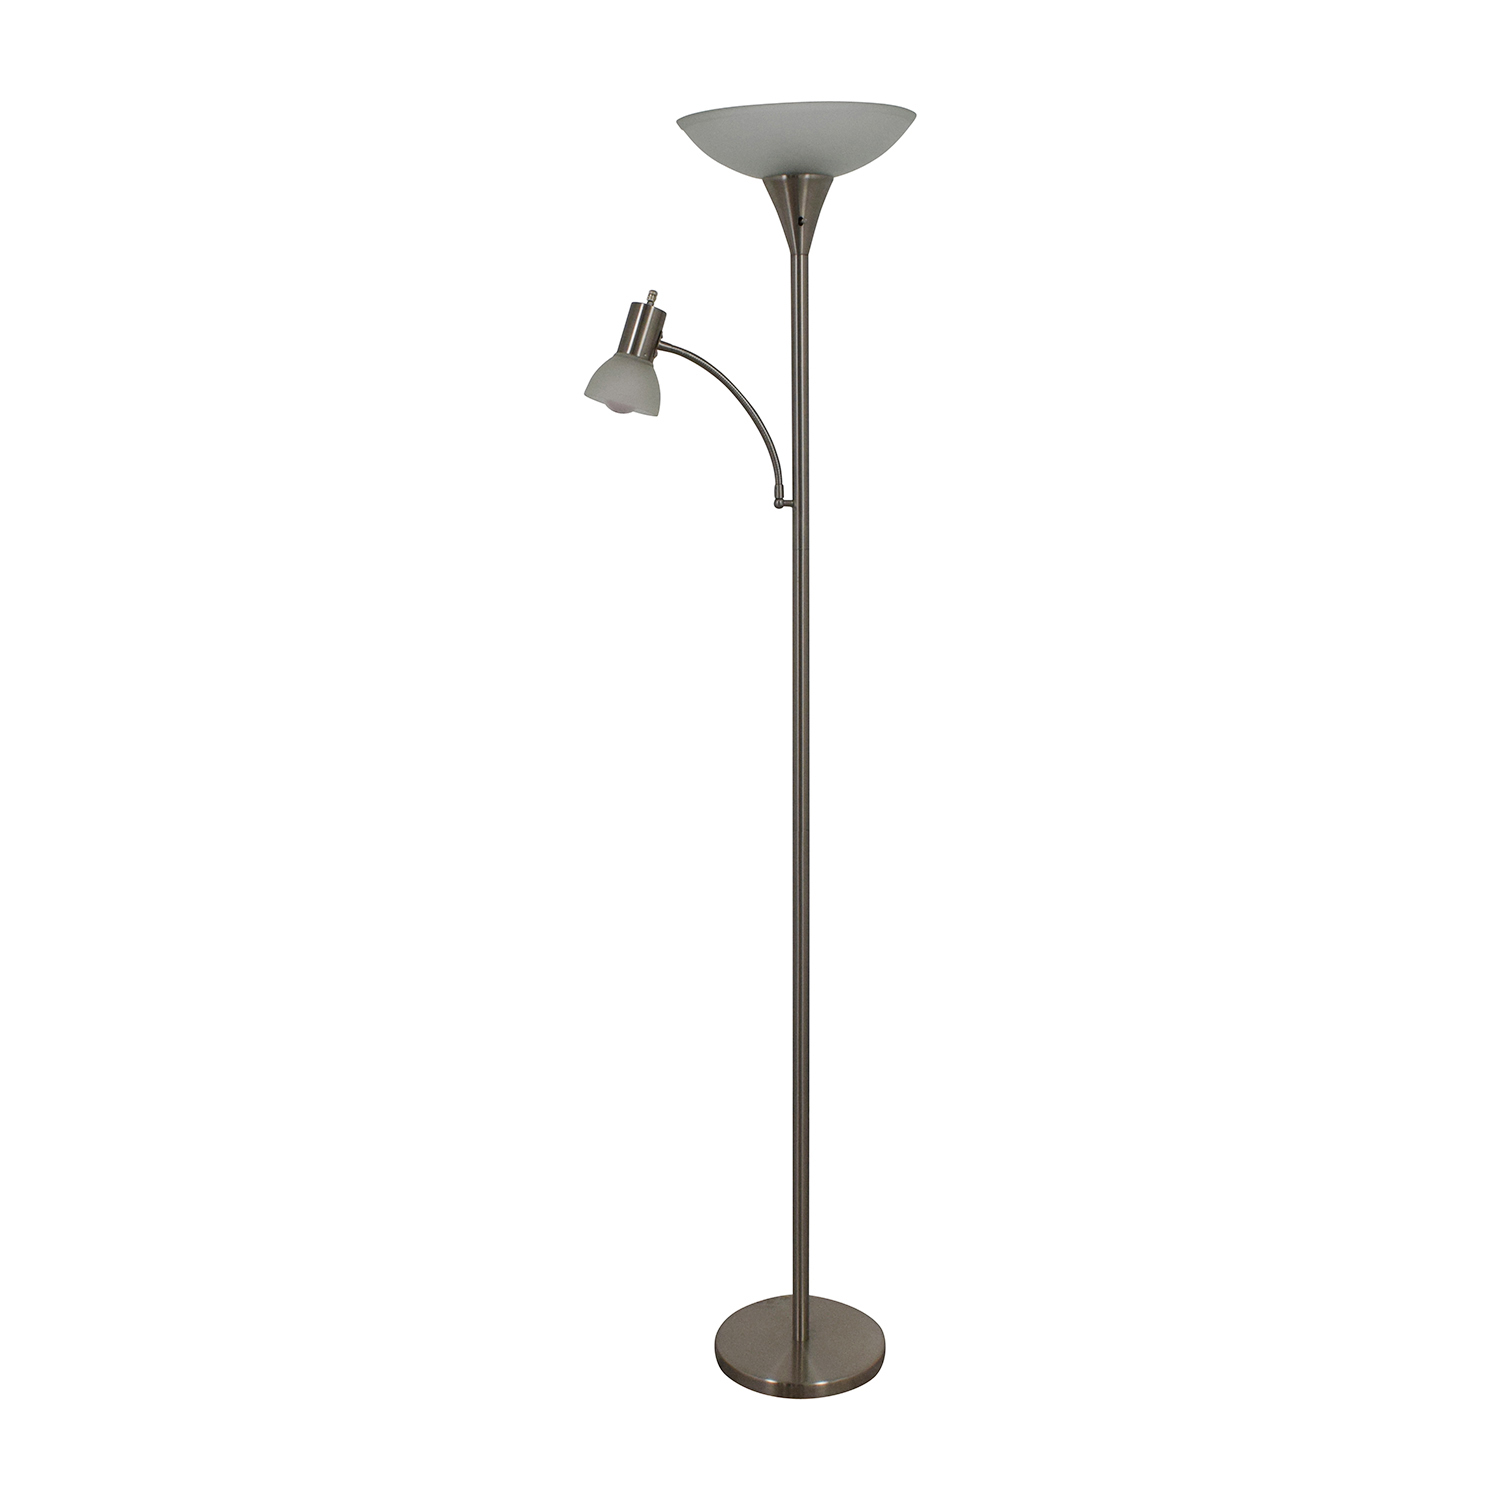 buy Light Accents Catalina Mother and Son Floor Lamp Light Accents